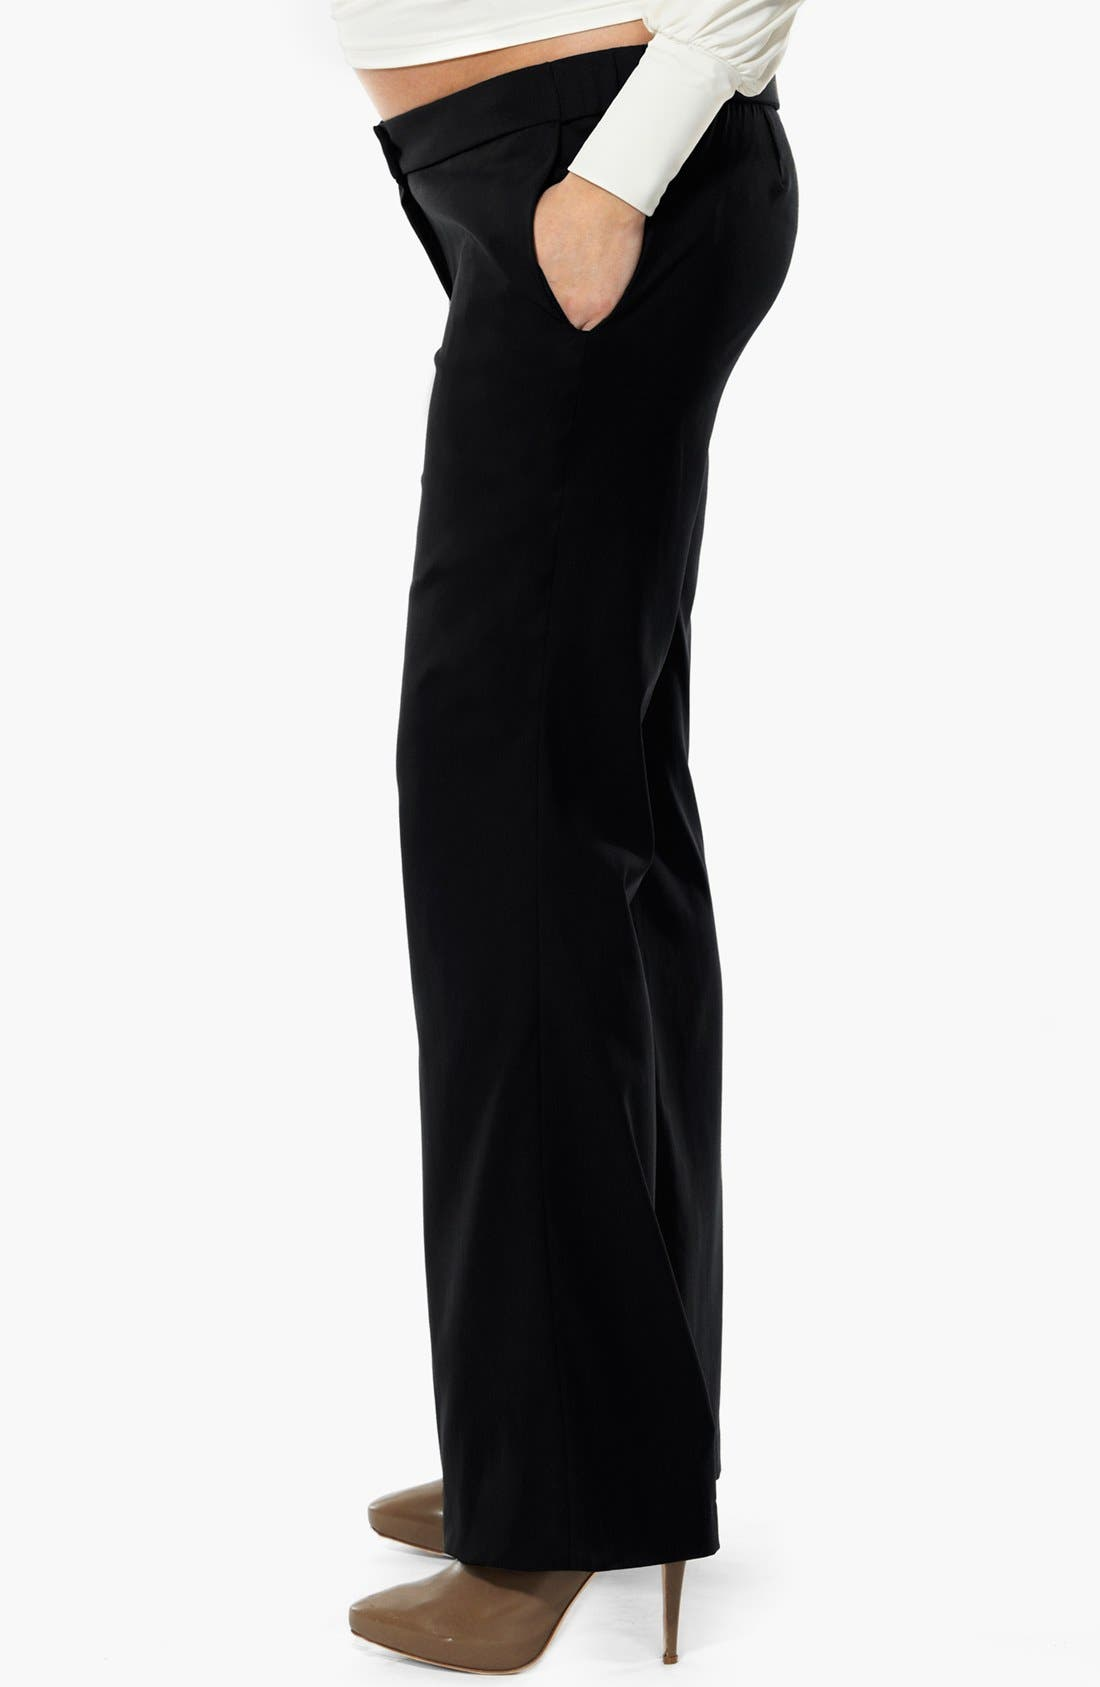 London 'Morgan' Tailored Maternity Pants,                             Alternate thumbnail 3, color,                             001